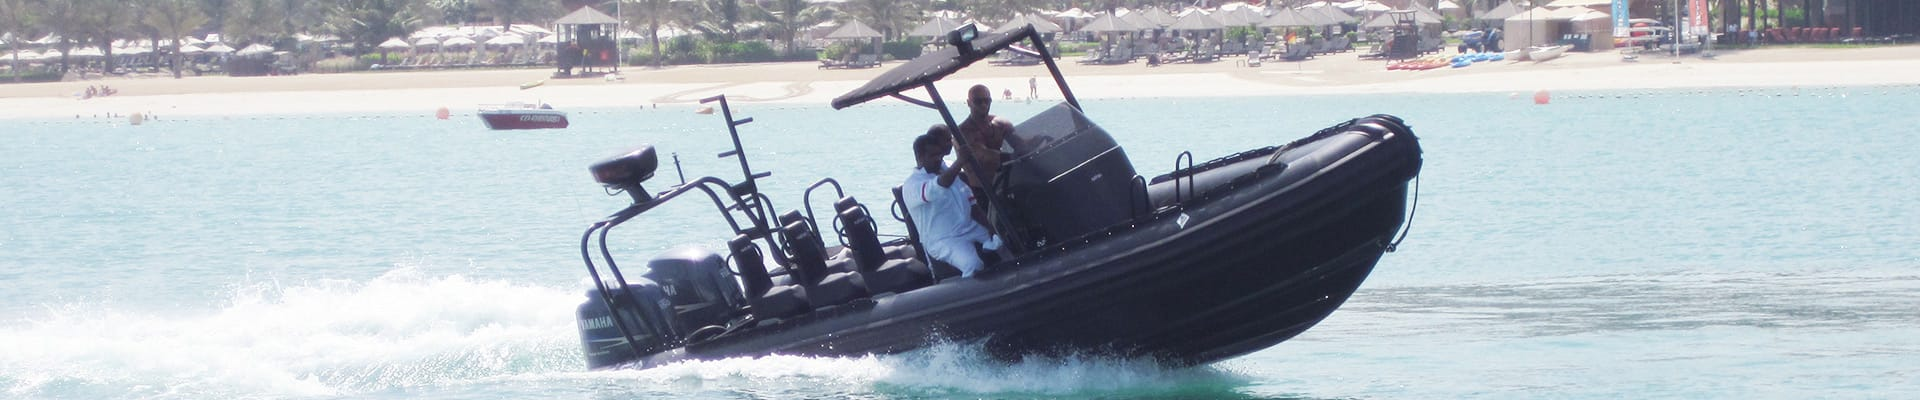 special-ops-boat-military-rib